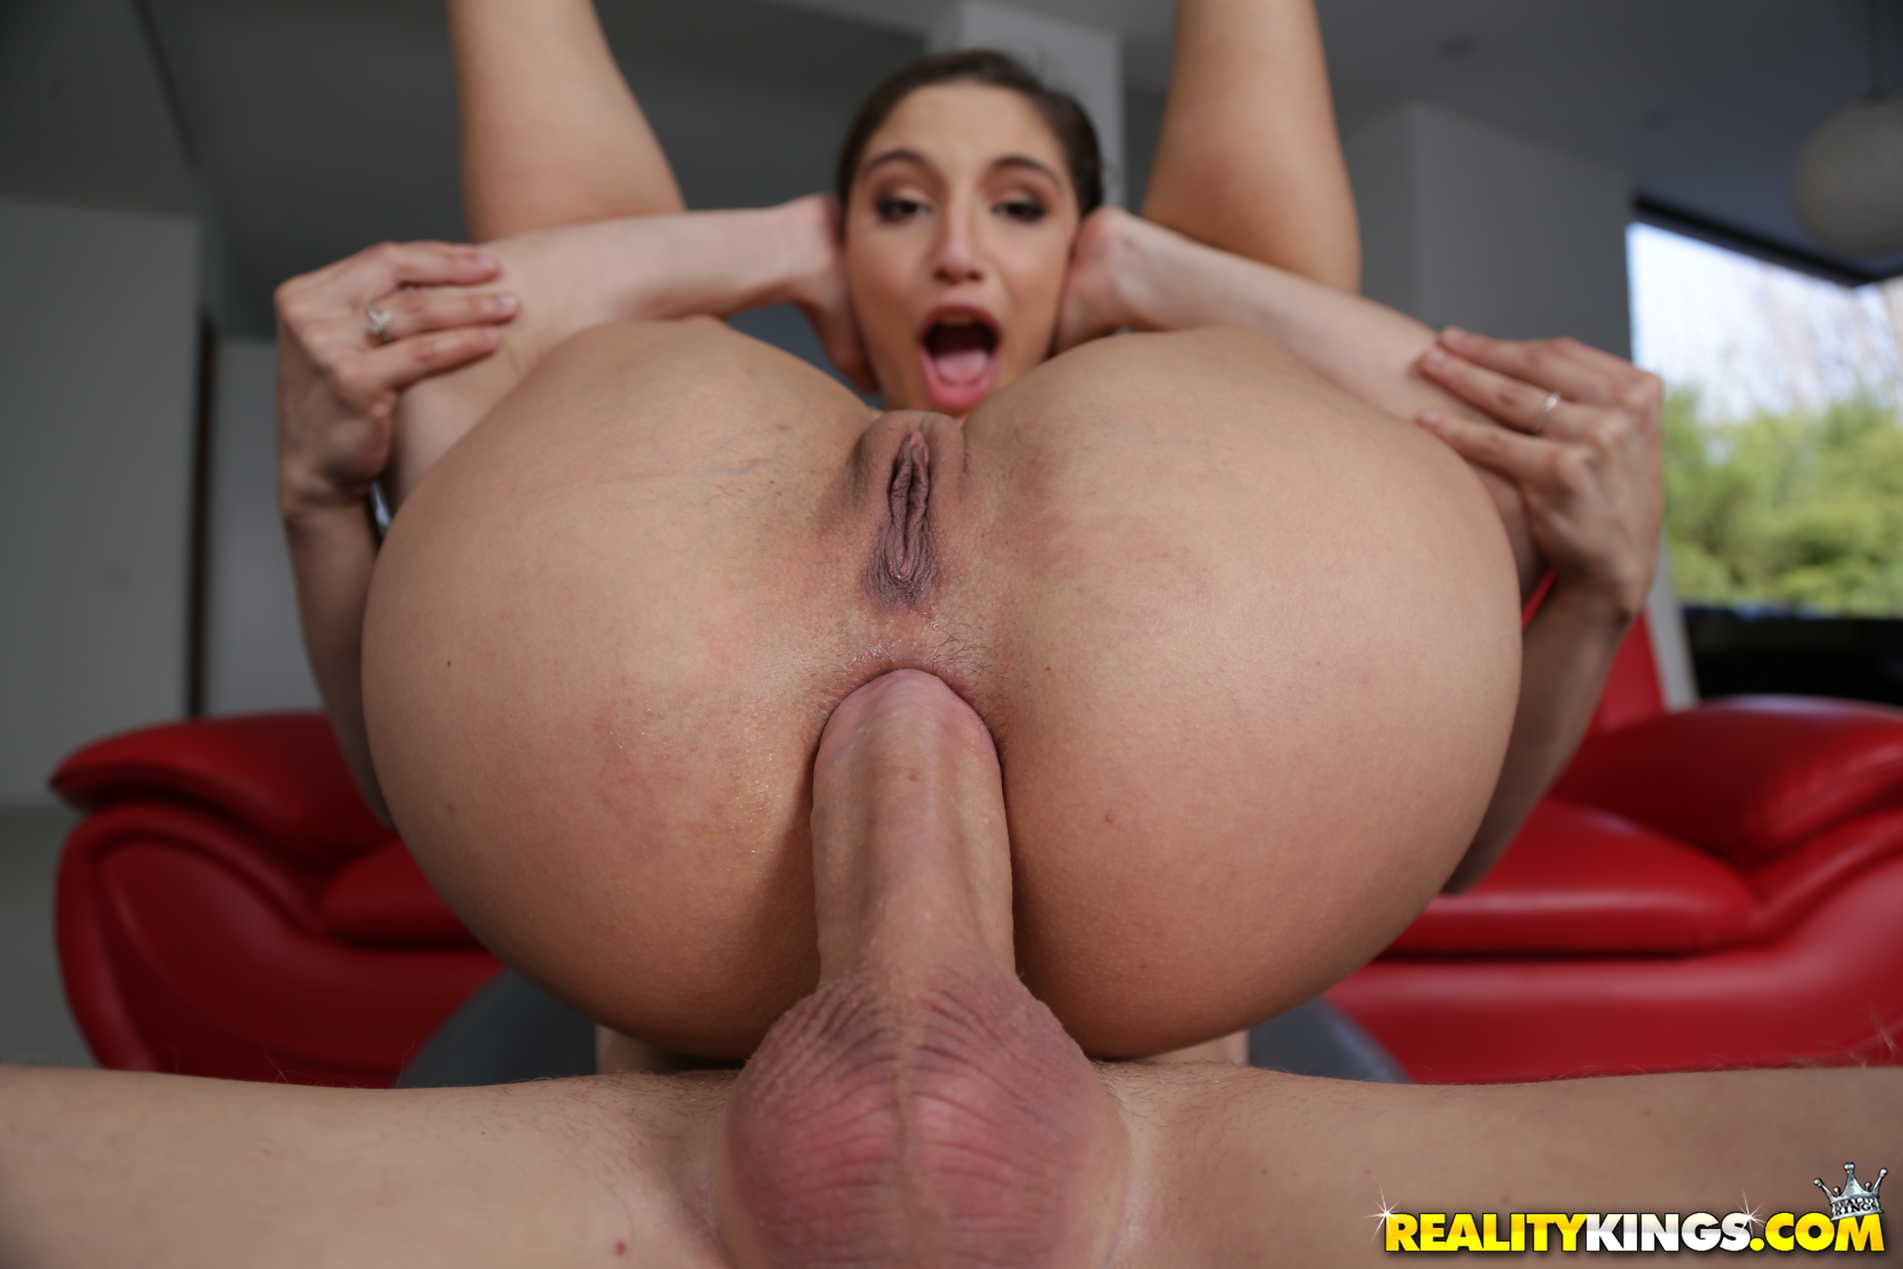 Reality Kings 'Abella Gets Physical' starring Abella Danger (photo 336)